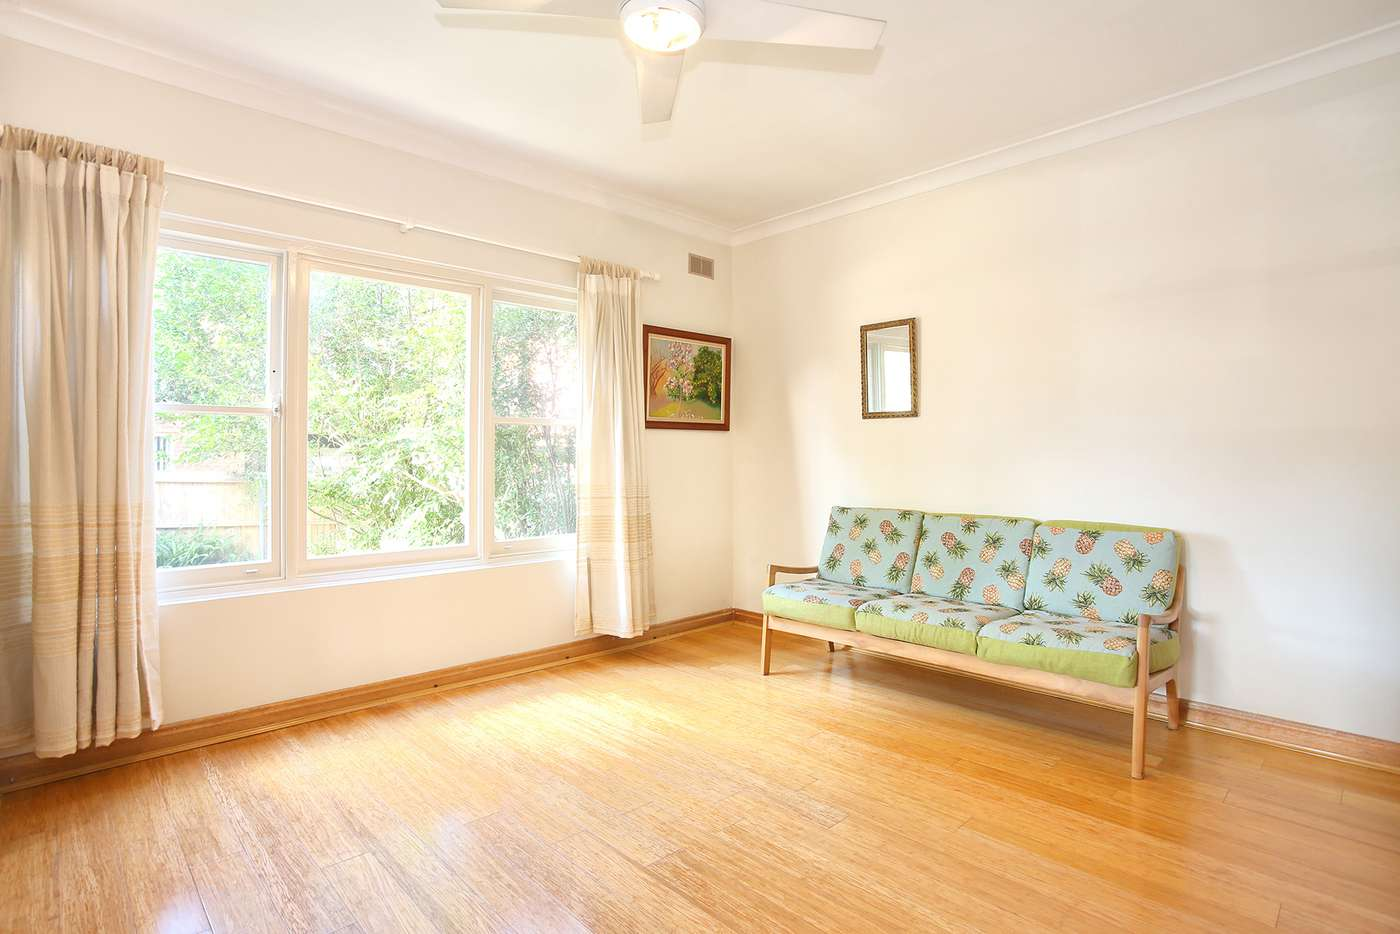 Fifth view of Homely unit listing, 1/9 Lovett Street, Manly Vale NSW 2093